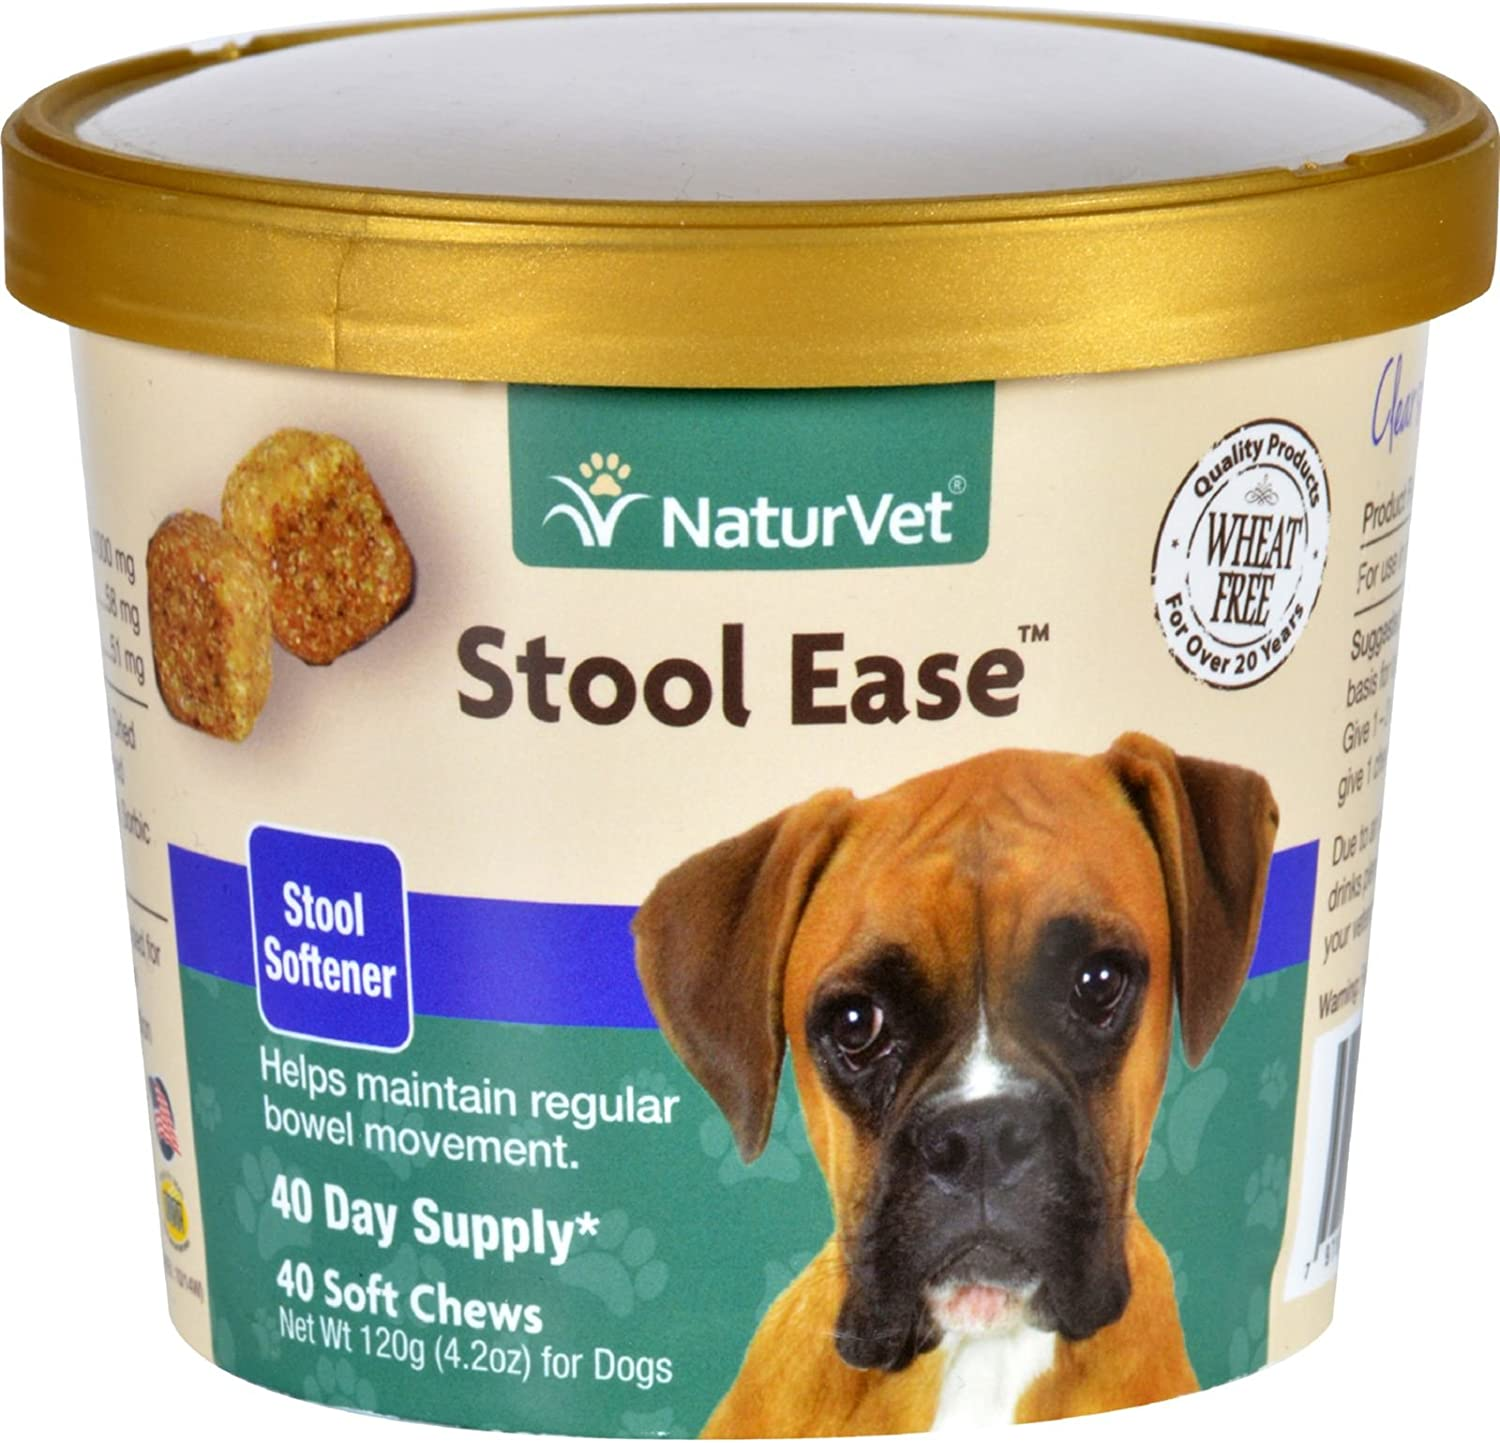 Stool Ease Dogs Cup 40 Soft Chews Wheat Free Helps maintain